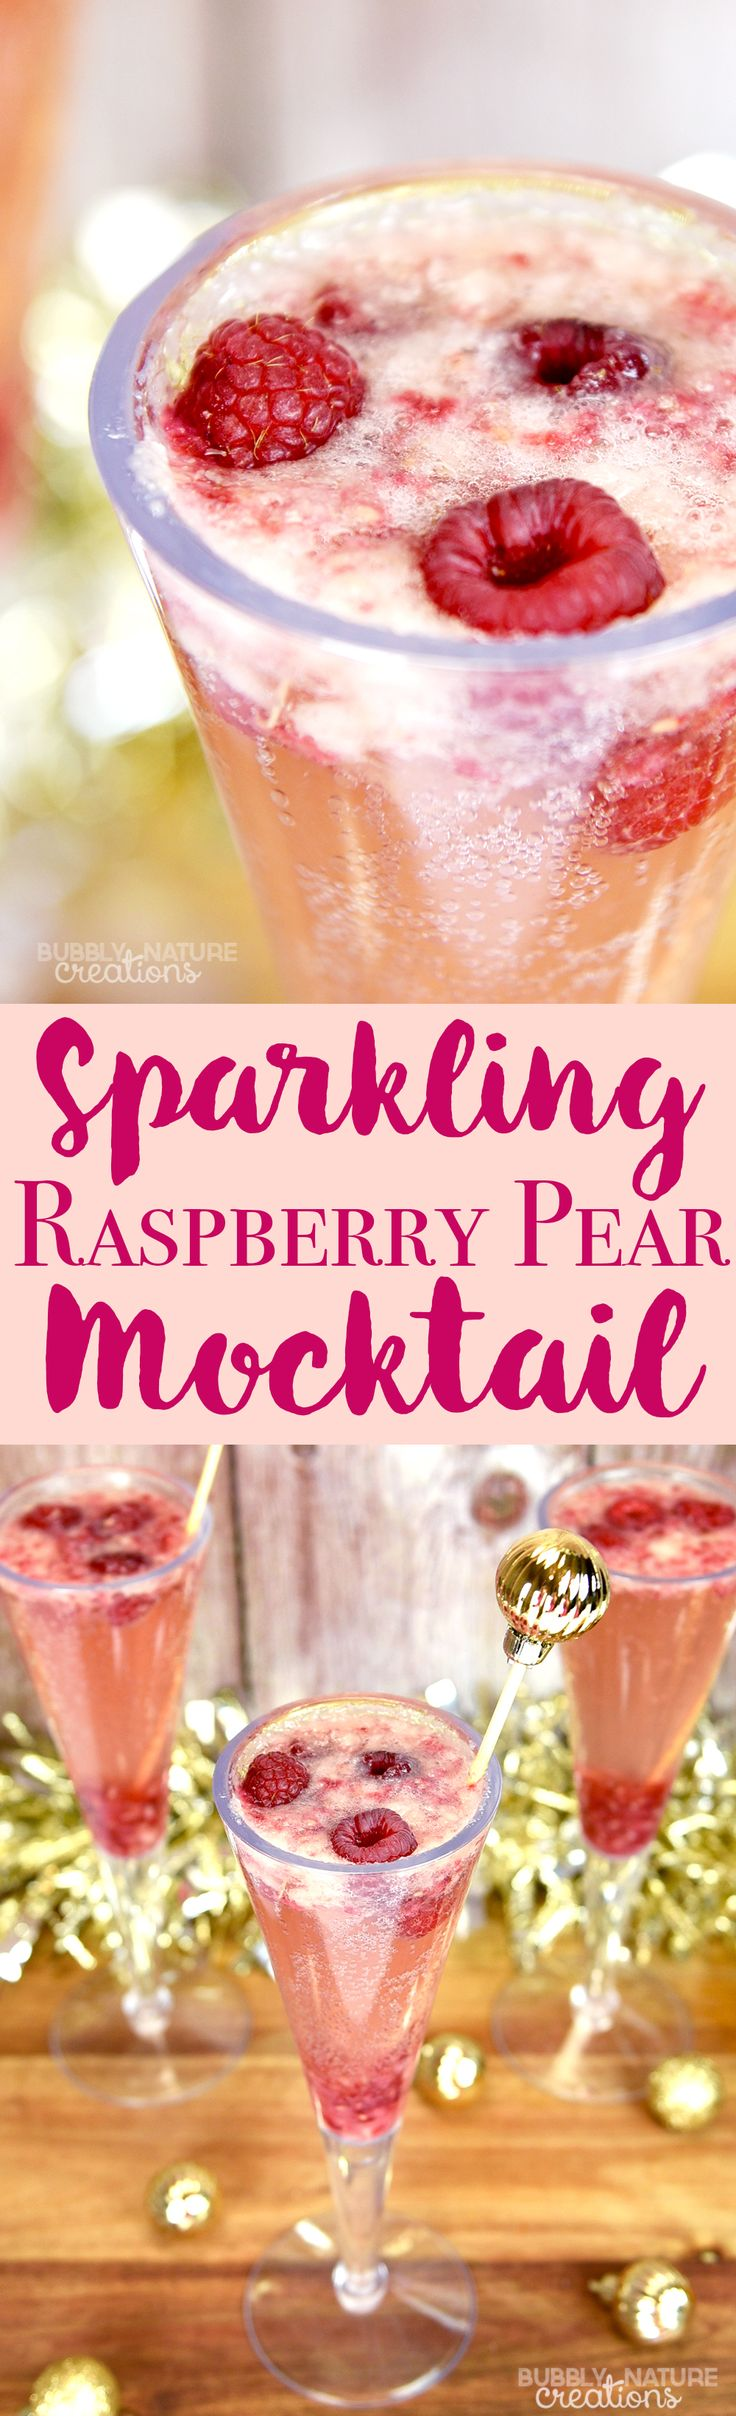 Sparkling Raspberry Pear Mocktail! Delicious drink for a holiday party or any celebration! #SparklingHolidays AD